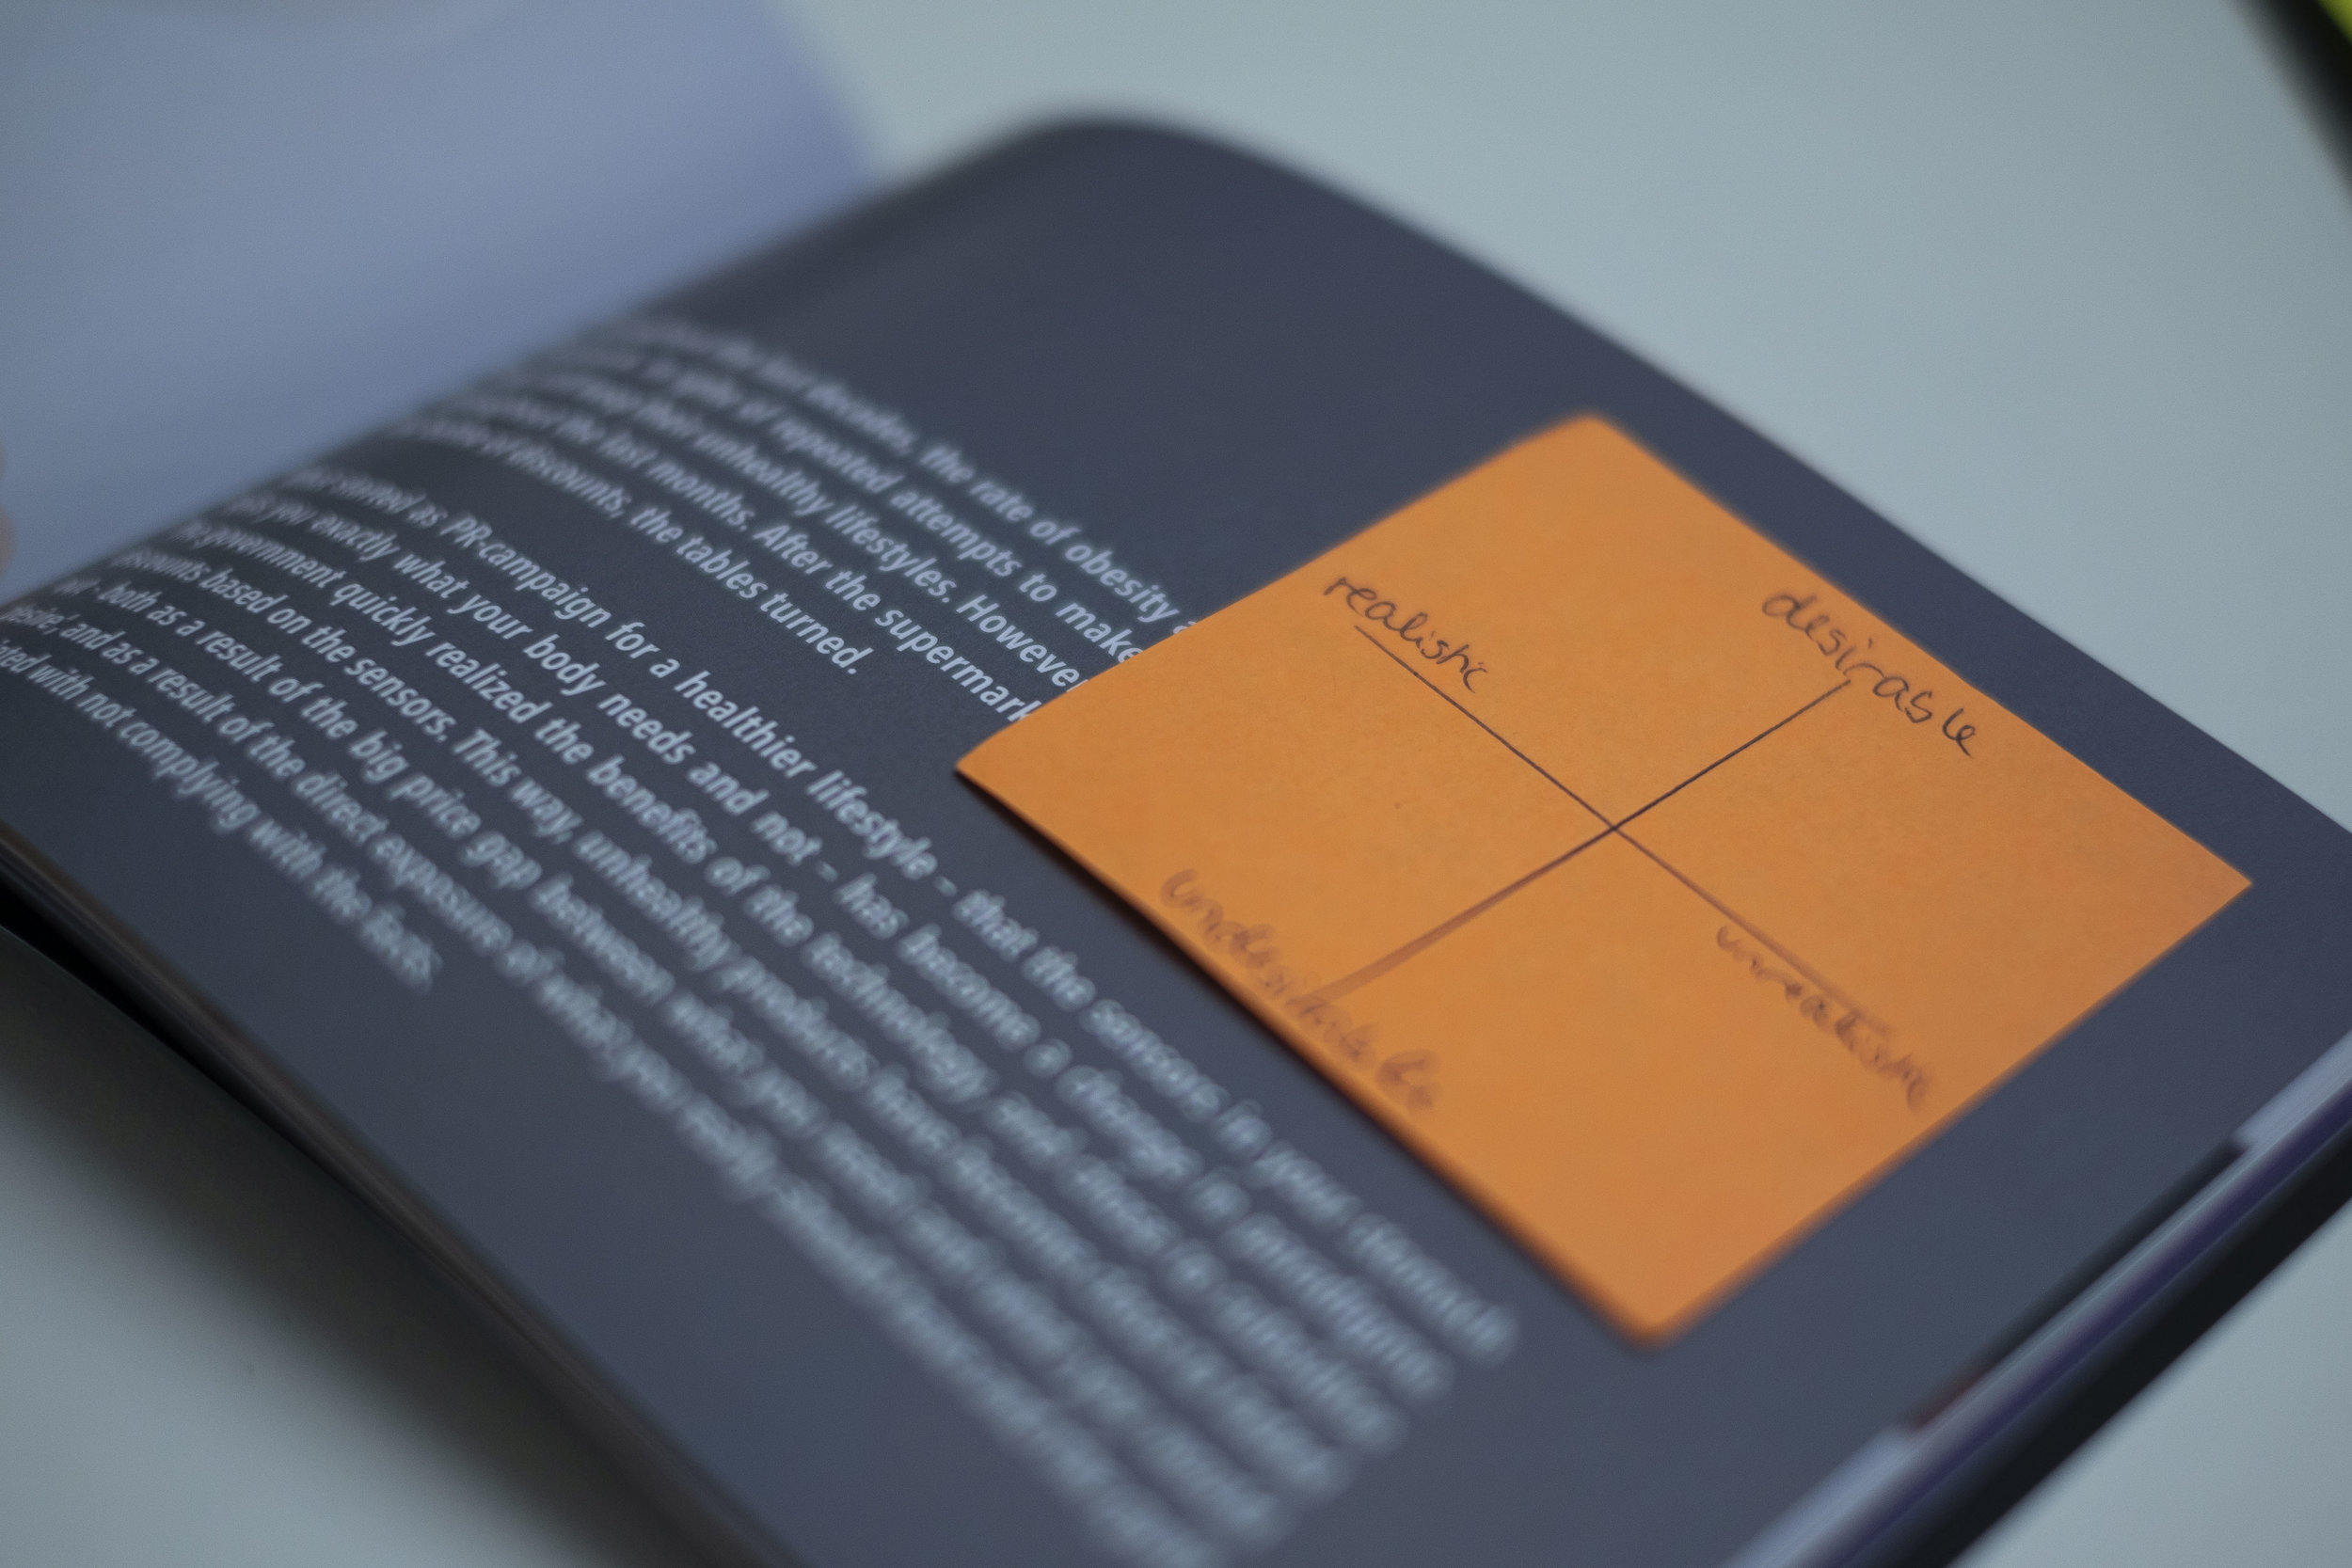 The Future Supermarket Workshop - Future Scenarios Booklet. Photo by Ivar Simonsen